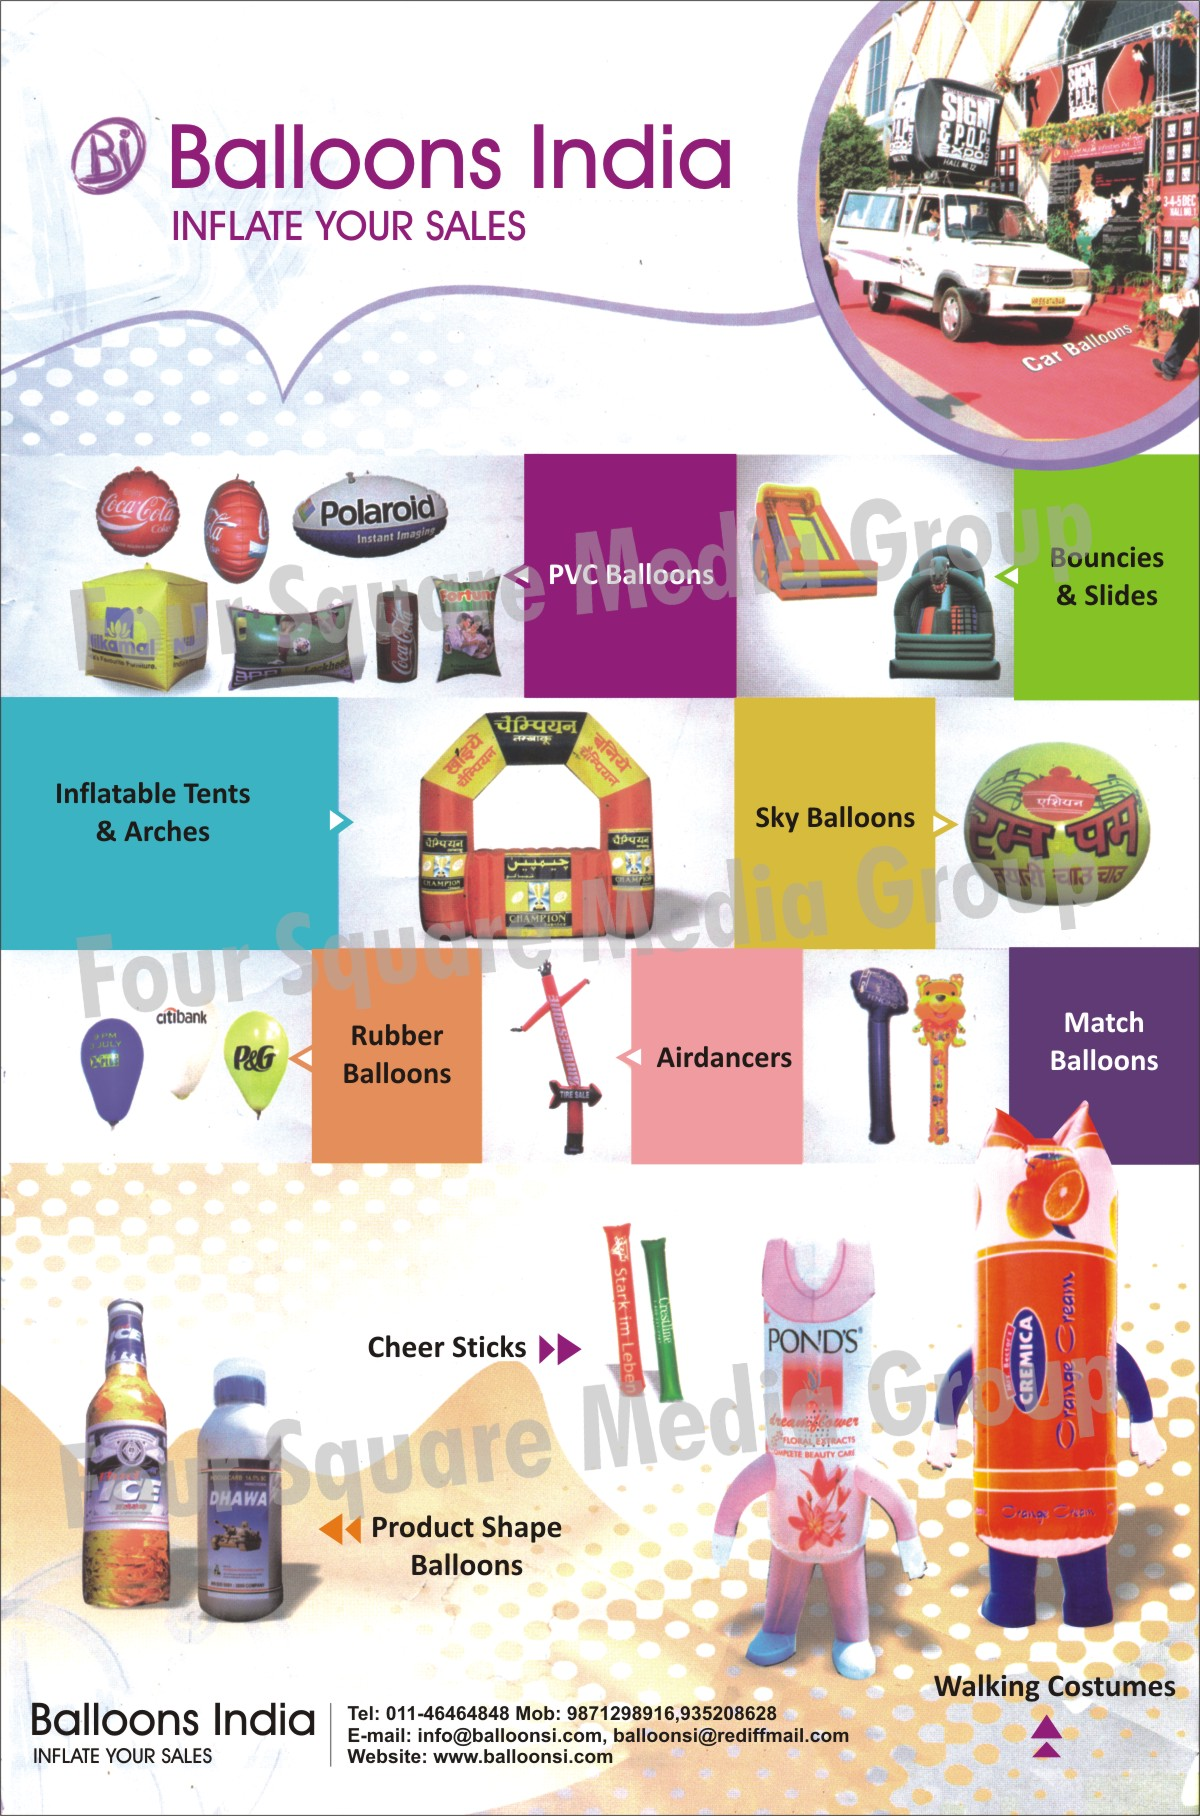 Air Dancers, Ball Pools, Car Balloons, Demo Tents, Inflatable Arch, PVC Balloons, Pop Up Balloons, Pole Balloons, Rubber Balloons, Product Shape Balloons, Slides, Sky Balloons